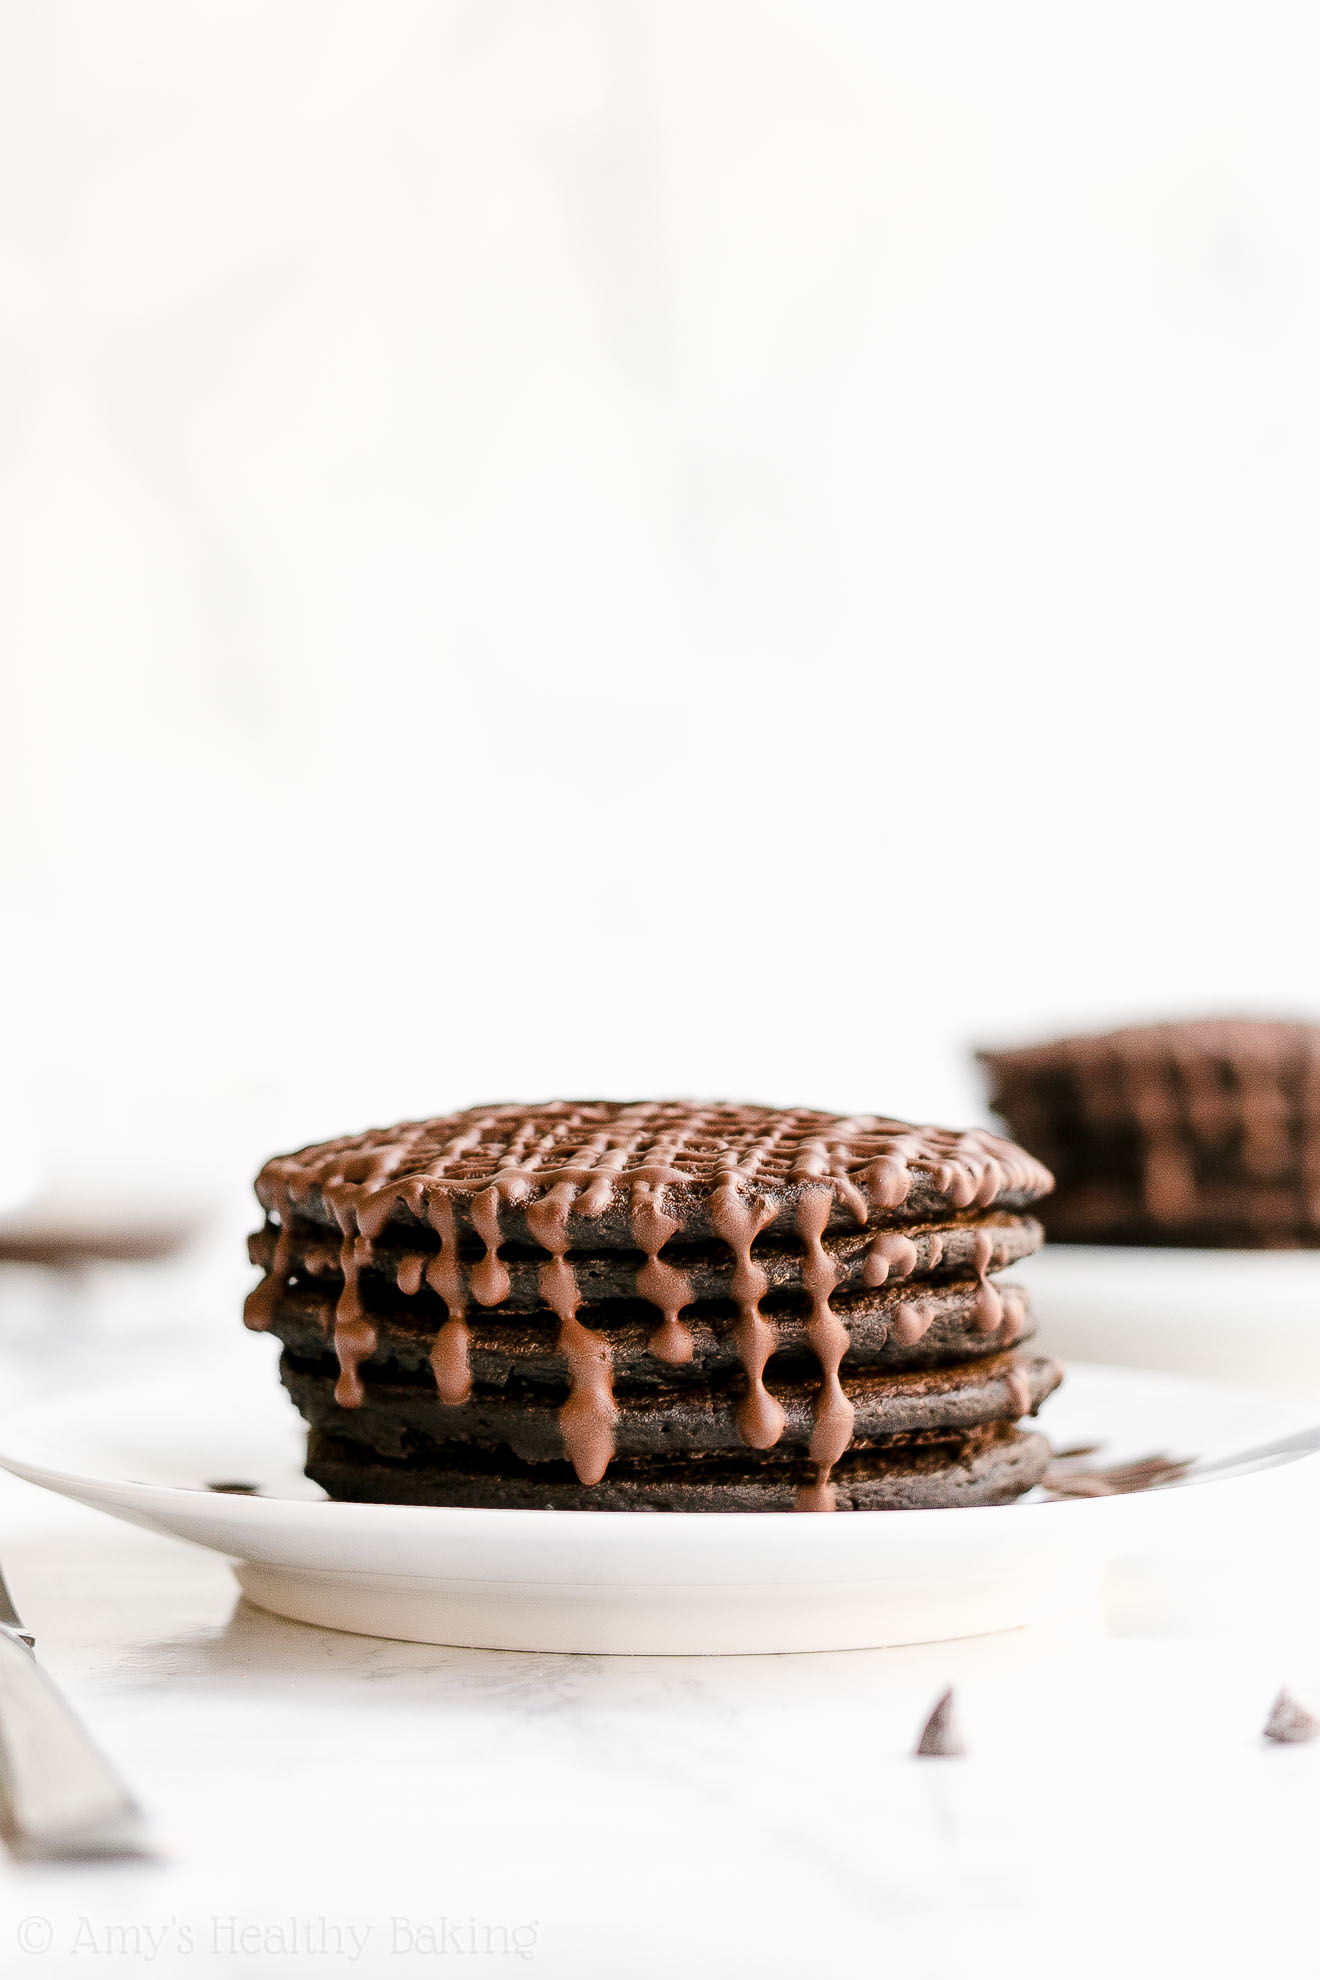 Healthy Gluten Free Sugar Free Dark Chocolate Pancakes